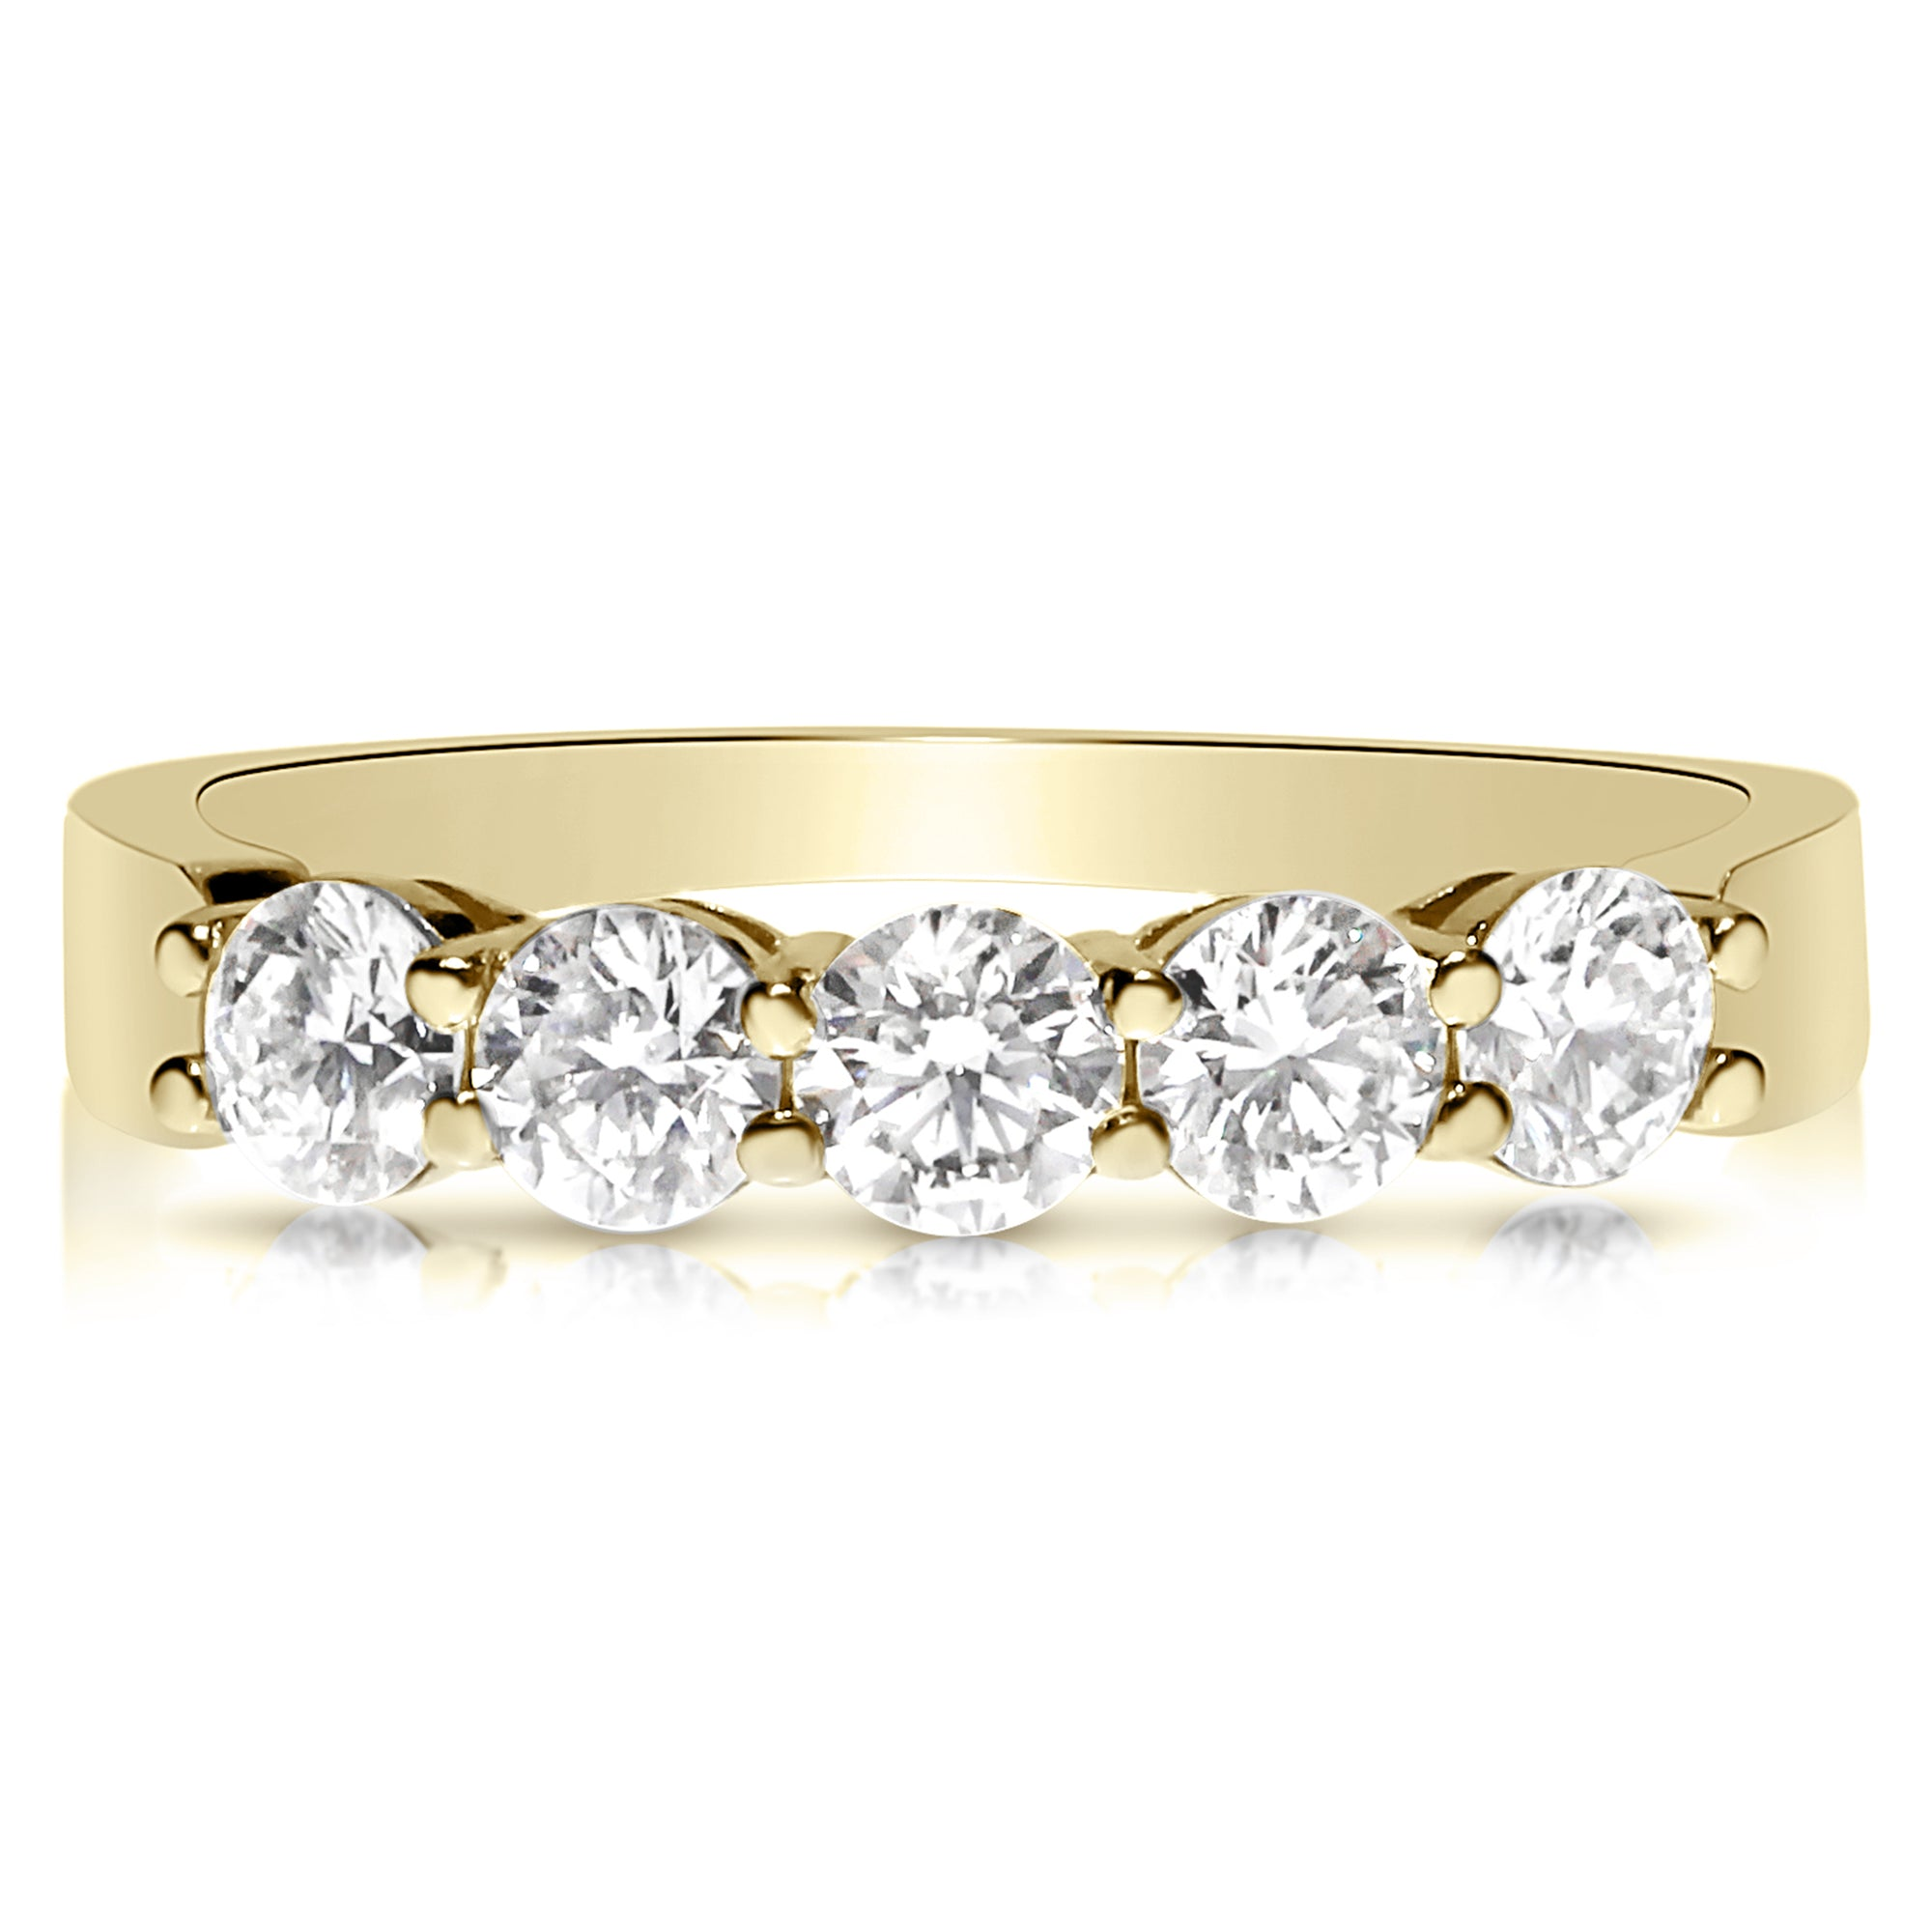 gallery carat diamond princess fresh cut or ring luxury jenny of claw wedding packham white single gold